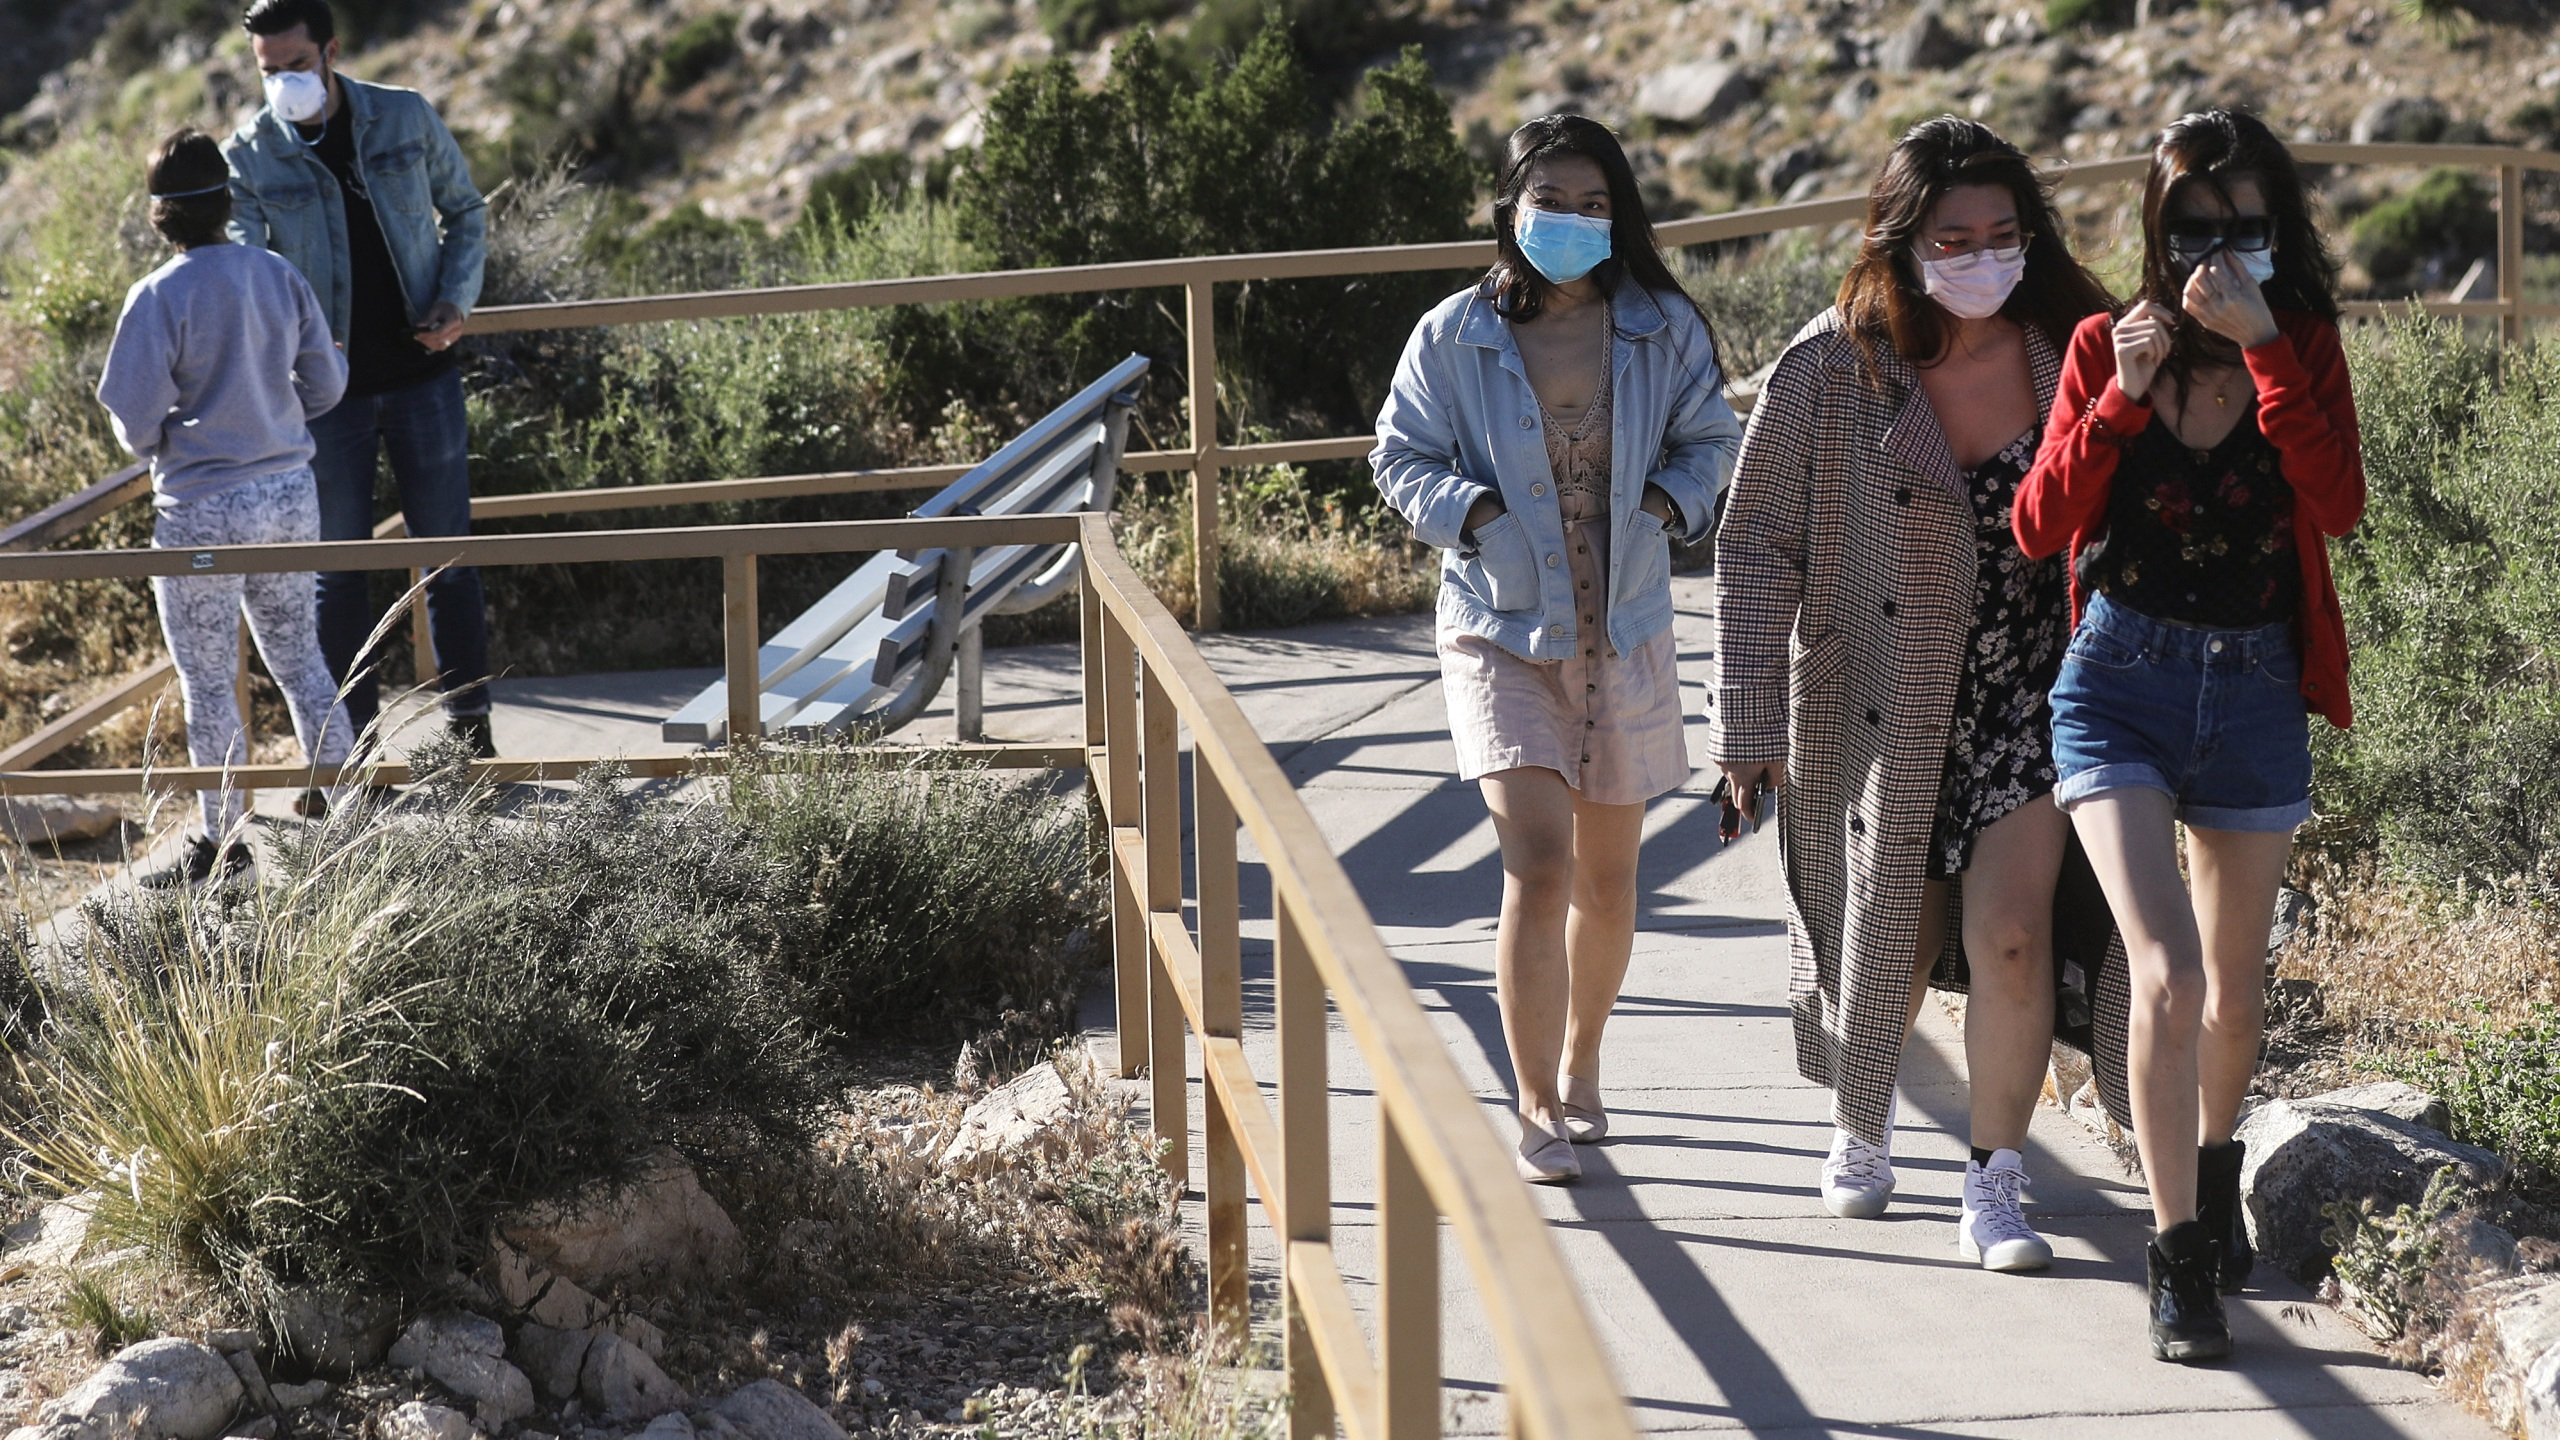 Visitors wear face masks on a walking path in Joshua Tree National Park one day after the park reopened after being closed for two months due to the coronavirus pandemic on May 18, 2020. (Mario Tama/Getty Images)